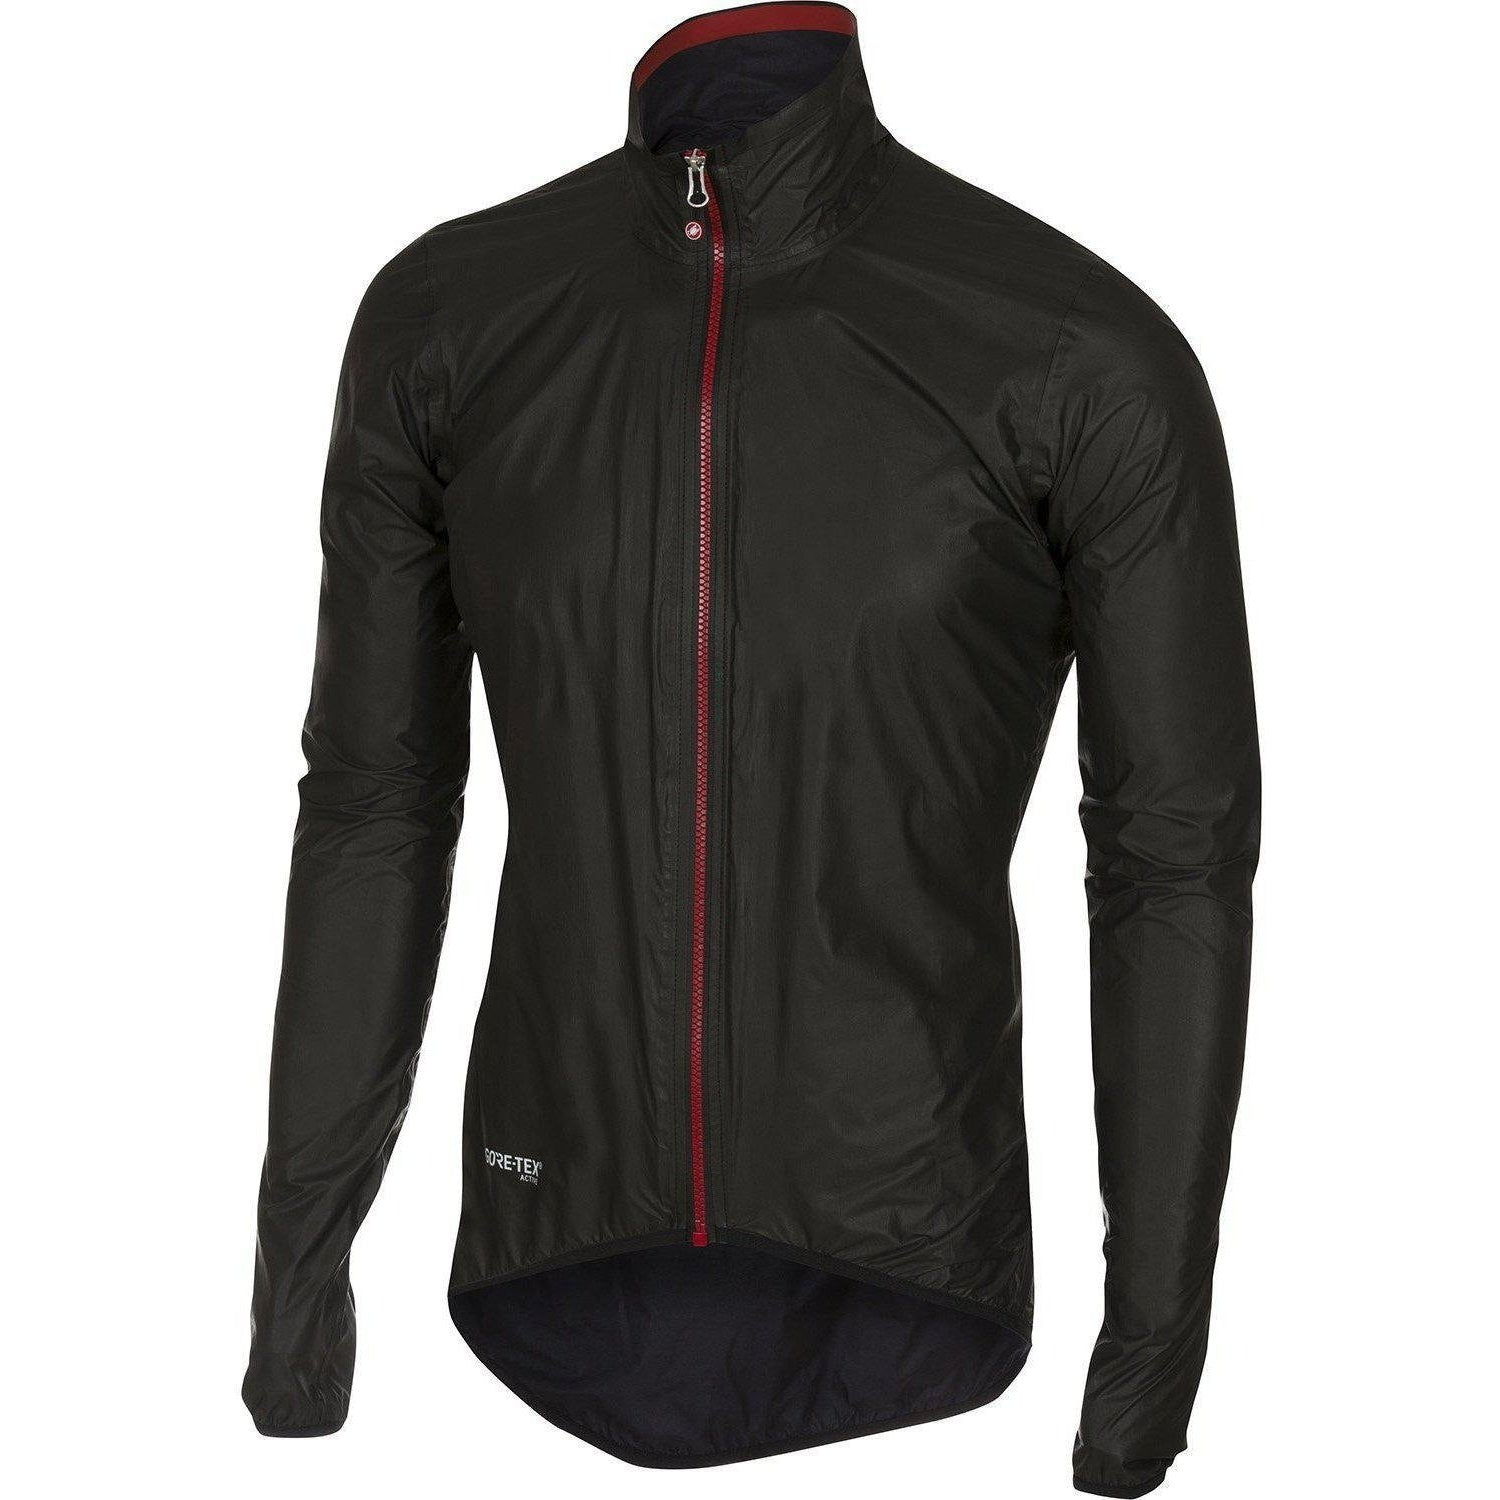 Castelli-Castelli Idro 2 Jacket-Black-S-CS180300102-saddleback-elite-performance-cycling